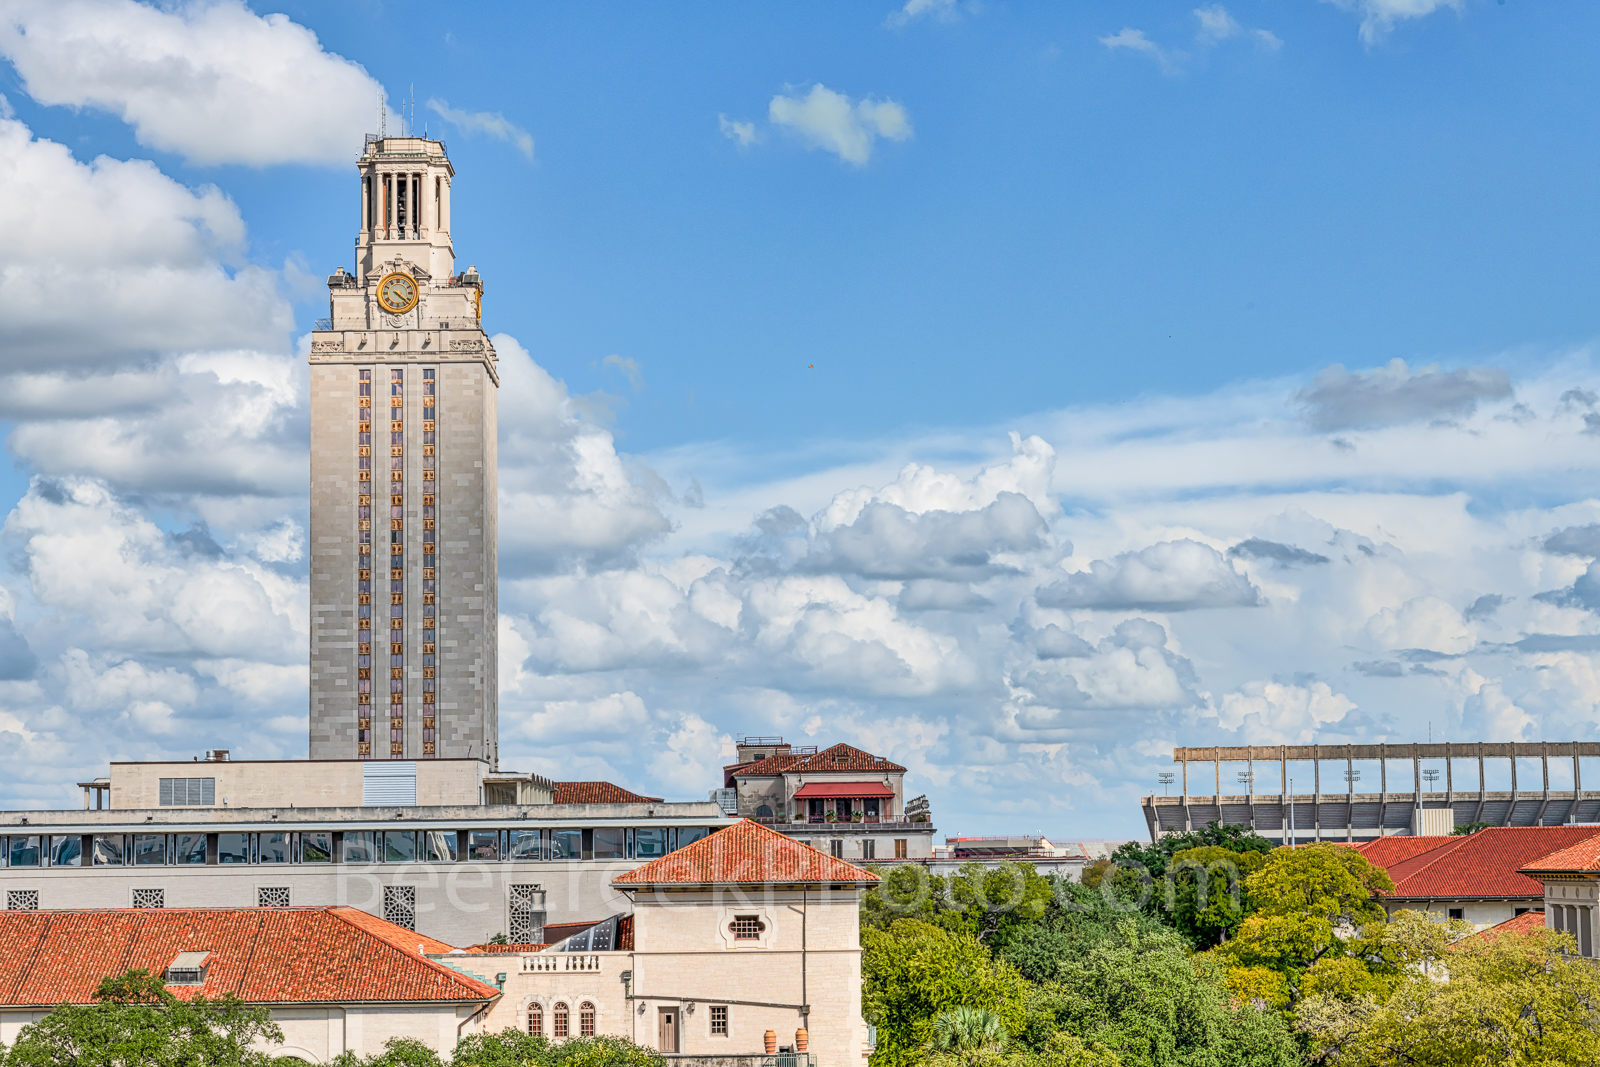 Austin, UT Tower, Stadium, Darrel Royal Stadium, cityscape, landmark, city, Austin cityscape, images of Austin, images of texas,, photo